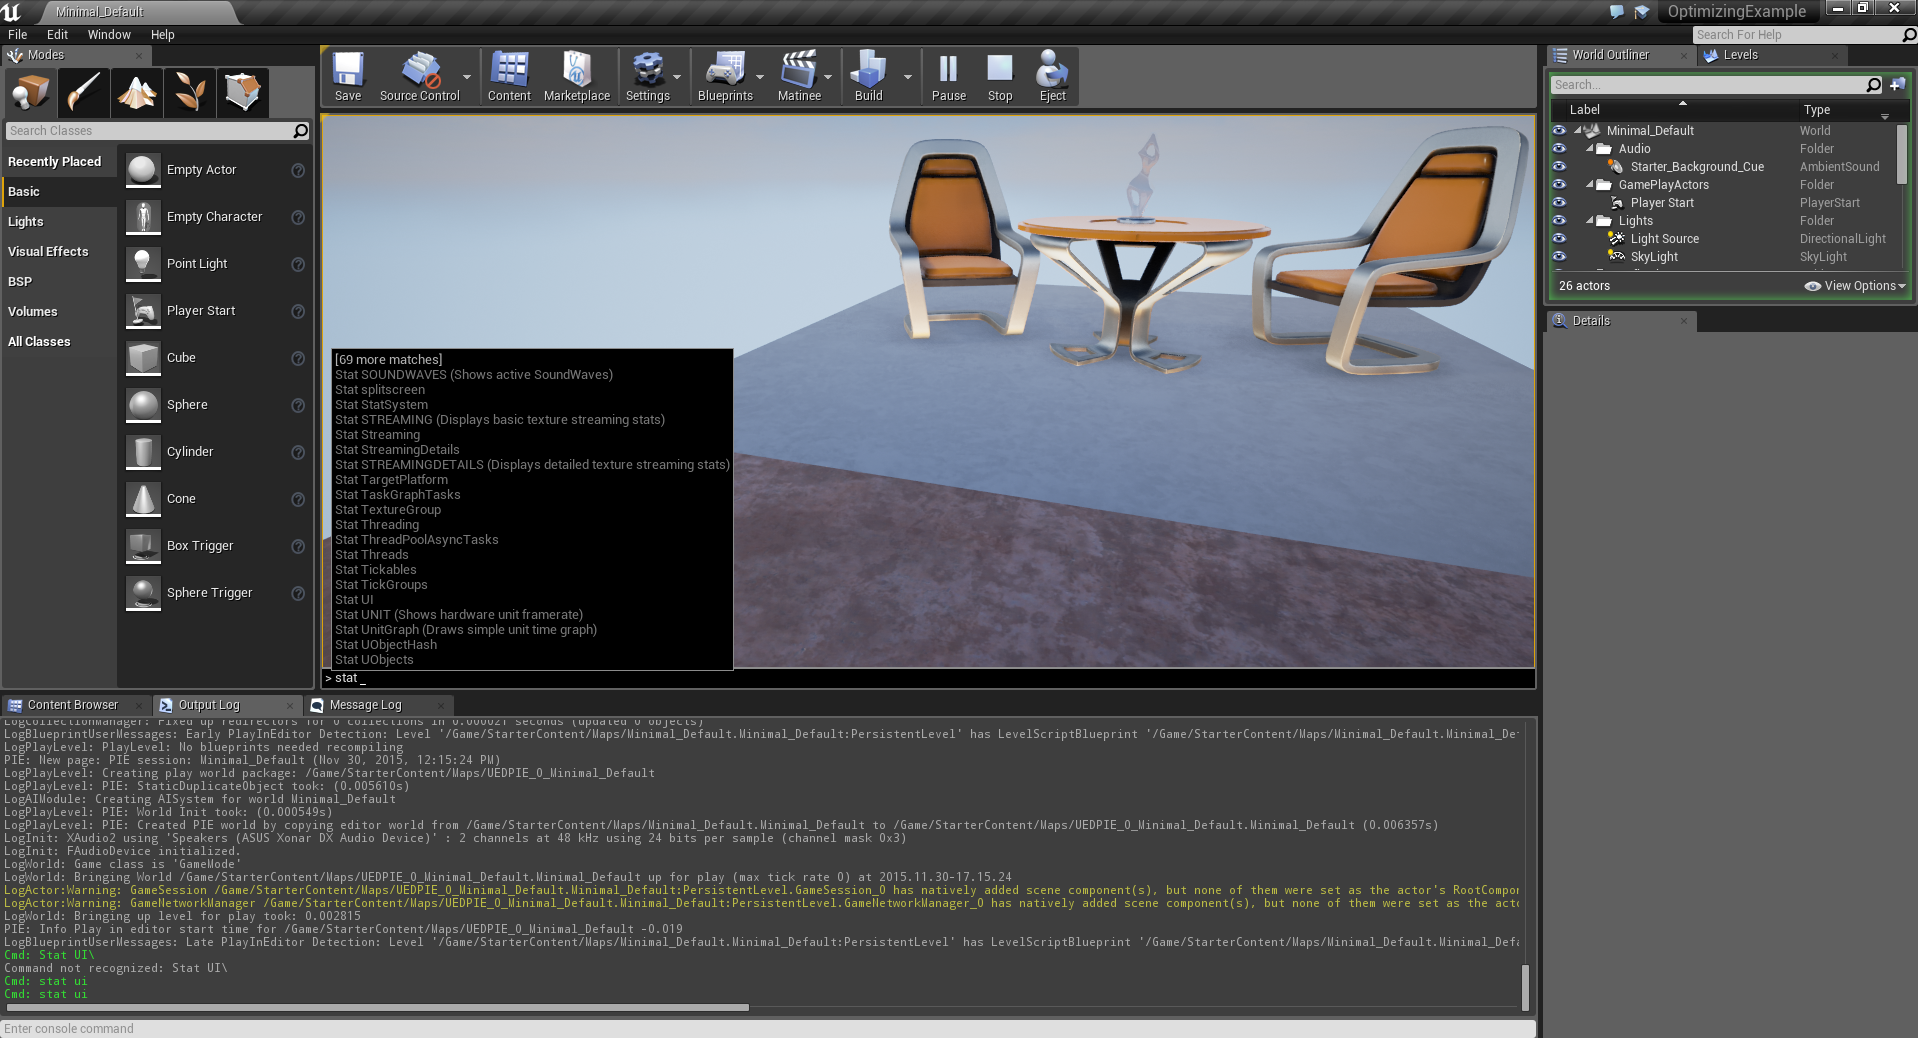 Optimizing and Profiling Games with Unreal Engine 4